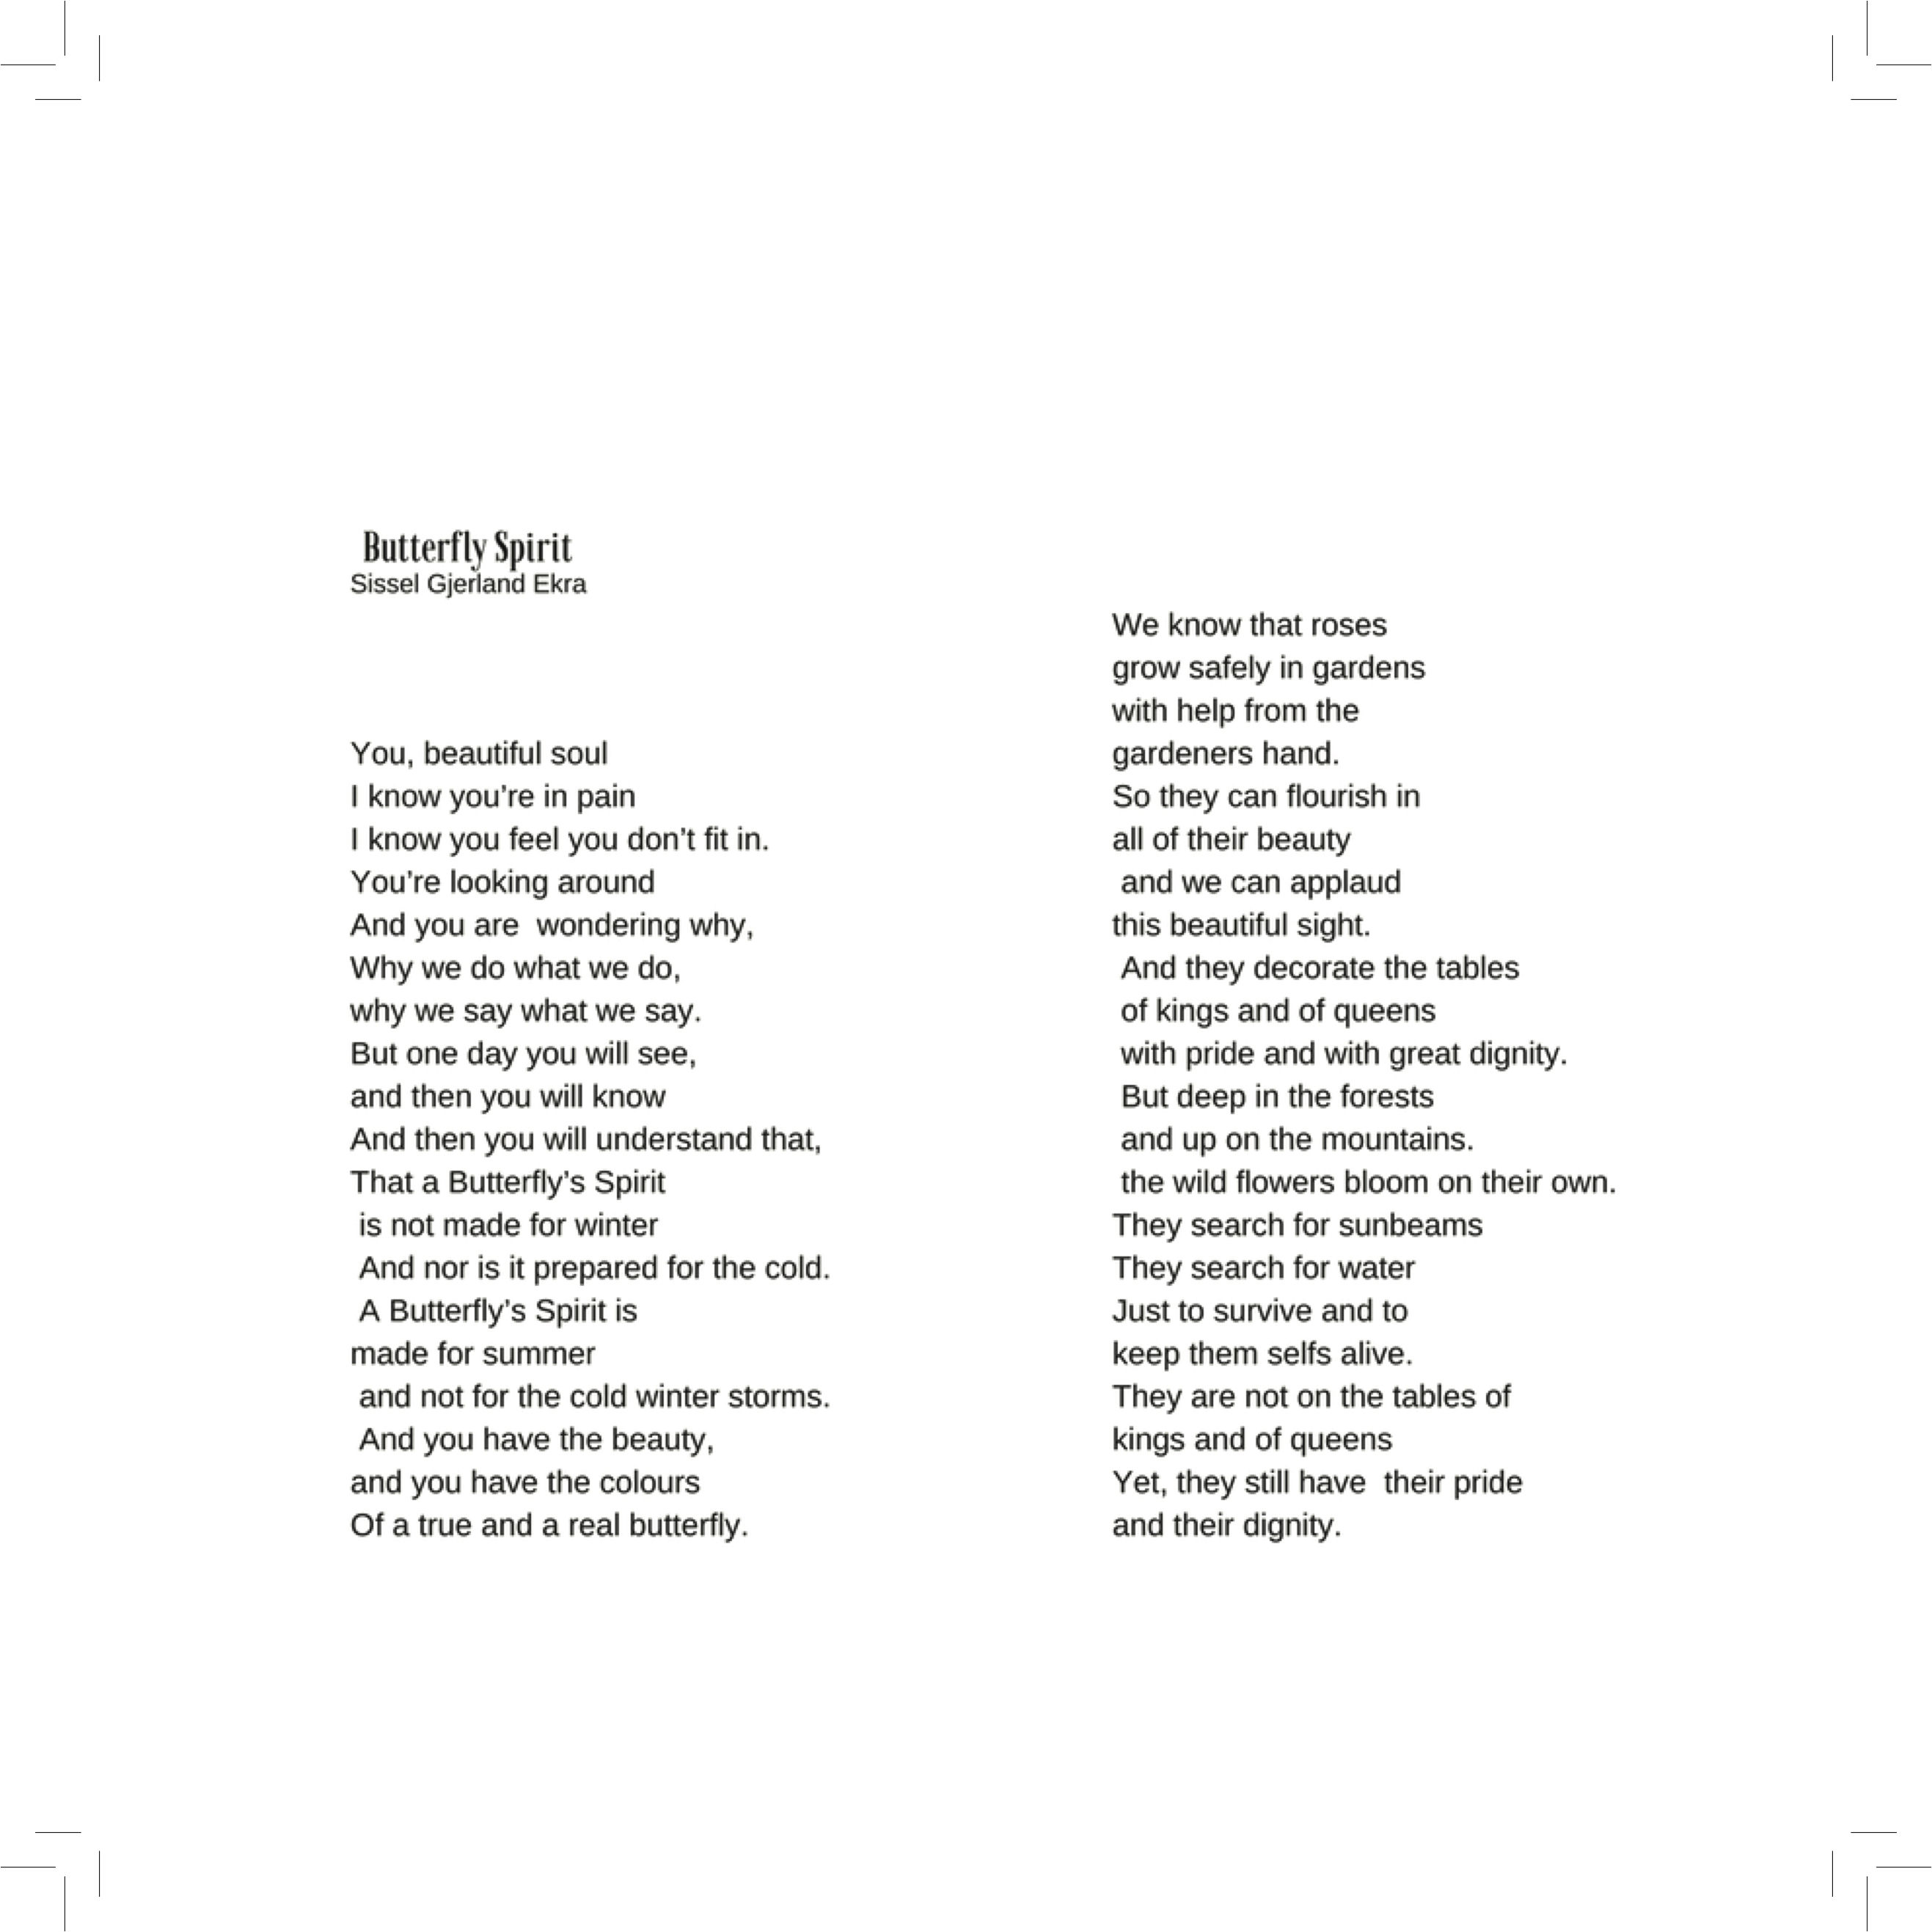 Butterfly Spirit - Lyrics